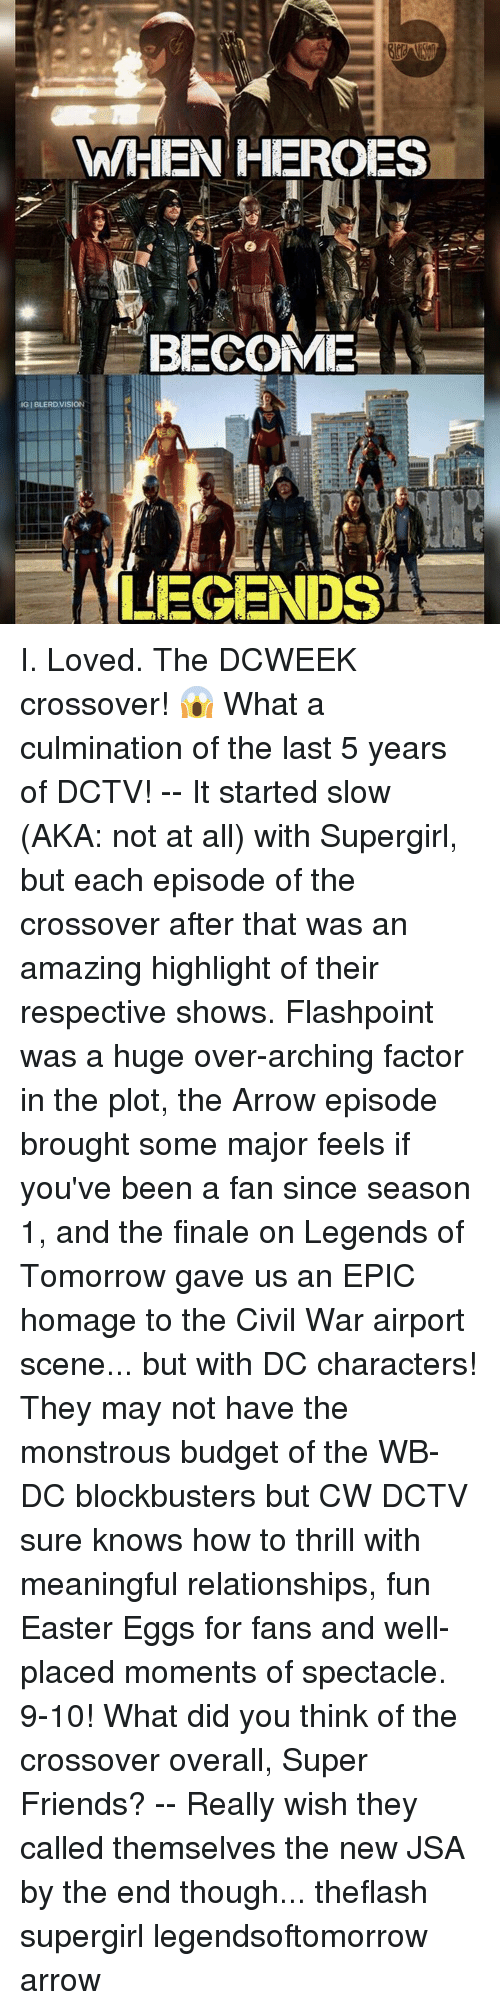 spectacles: WHEN HEROES  BECOME  IGIBLERD VISION  LEGENDS I. Loved. The DCWEEK crossover! 😱 What a culmination of the last 5 years of DCTV! -- It started slow (AKA: not at all) with Supergirl, but each episode of the crossover after that was an amazing highlight of their respective shows. Flashpoint was a huge over-arching factor in the plot, the Arrow episode brought some major feels if you've been a fan since season 1, and the finale on Legends of Tomorrow gave us an EPIC homage to the Civil War airport scene... but with DC characters! They may not have the monstrous budget of the WB-DC blockbusters but CW DCTV sure knows how to thrill with meaningful relationships, fun Easter Eggs for fans and well-placed moments of spectacle. 9-10! What did you think of the crossover overall, Super Friends? -- Really wish they called themselves the new JSA by the end though... theflash supergirl legendsoftomorrow arrow